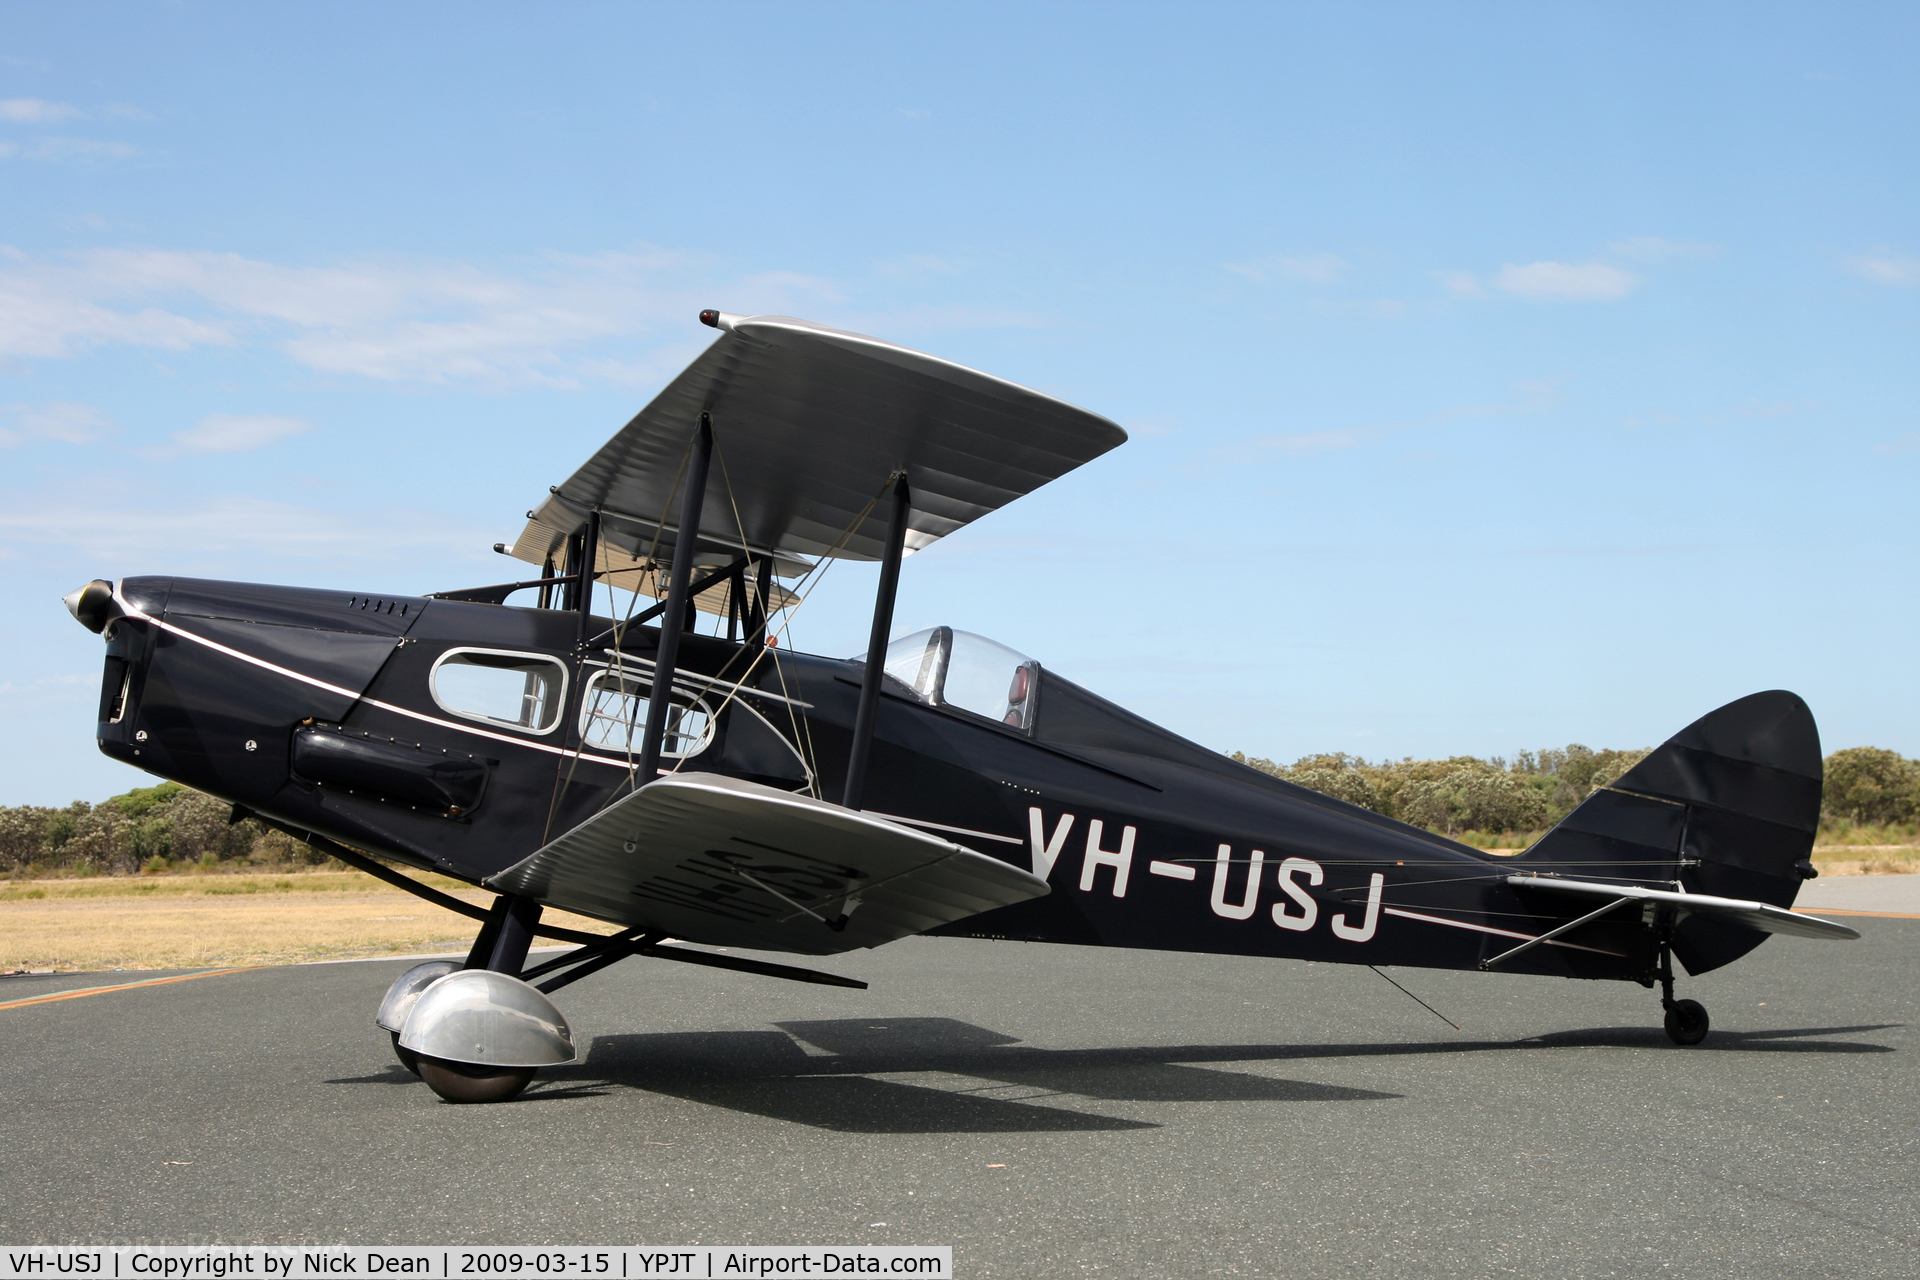 VH-USJ, 1933 De Havilland DH.83 Fox Moth C/N 4058, YPJT (Thanks to the aircraft owner for being kind enough to wait an hour for the sun to come out for me to get this shot)